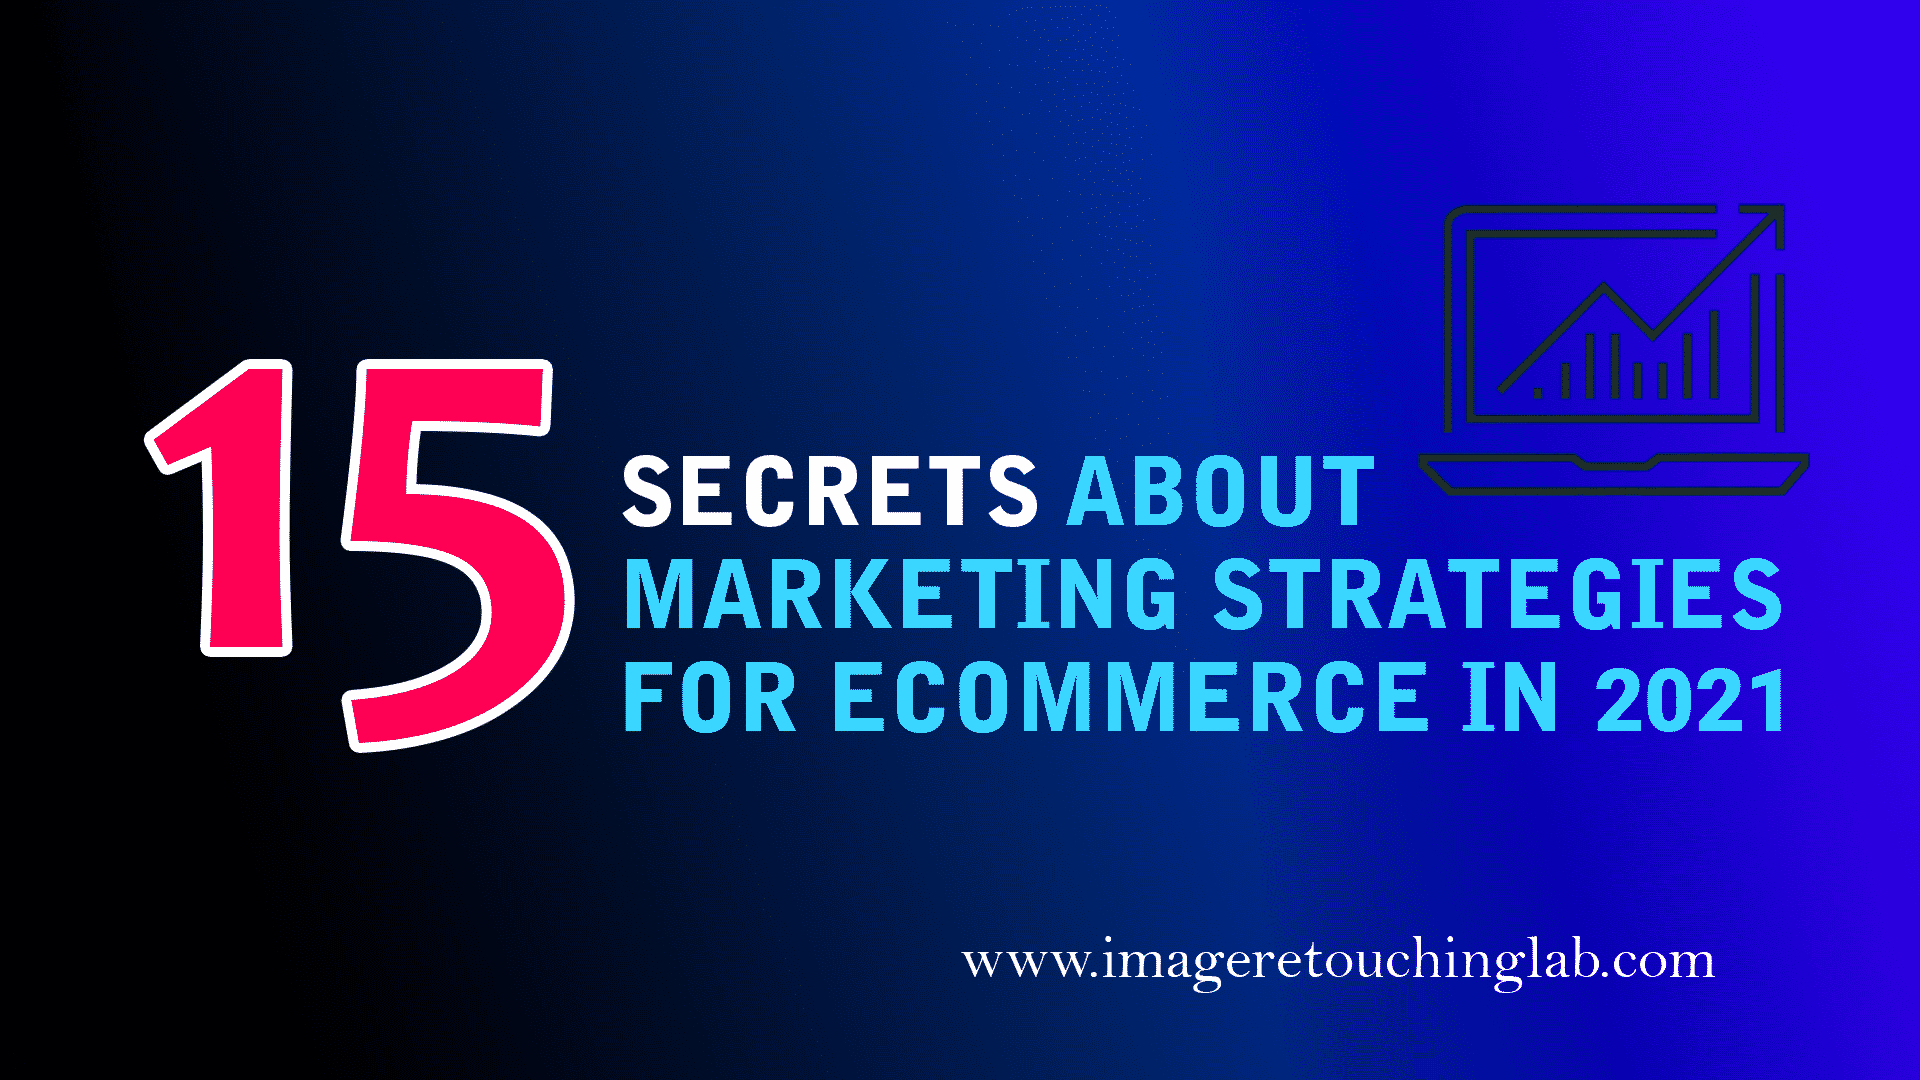 15 Secrets About Marketing Strategies For Ecommerce in 2019 That Nobody Will Tell You